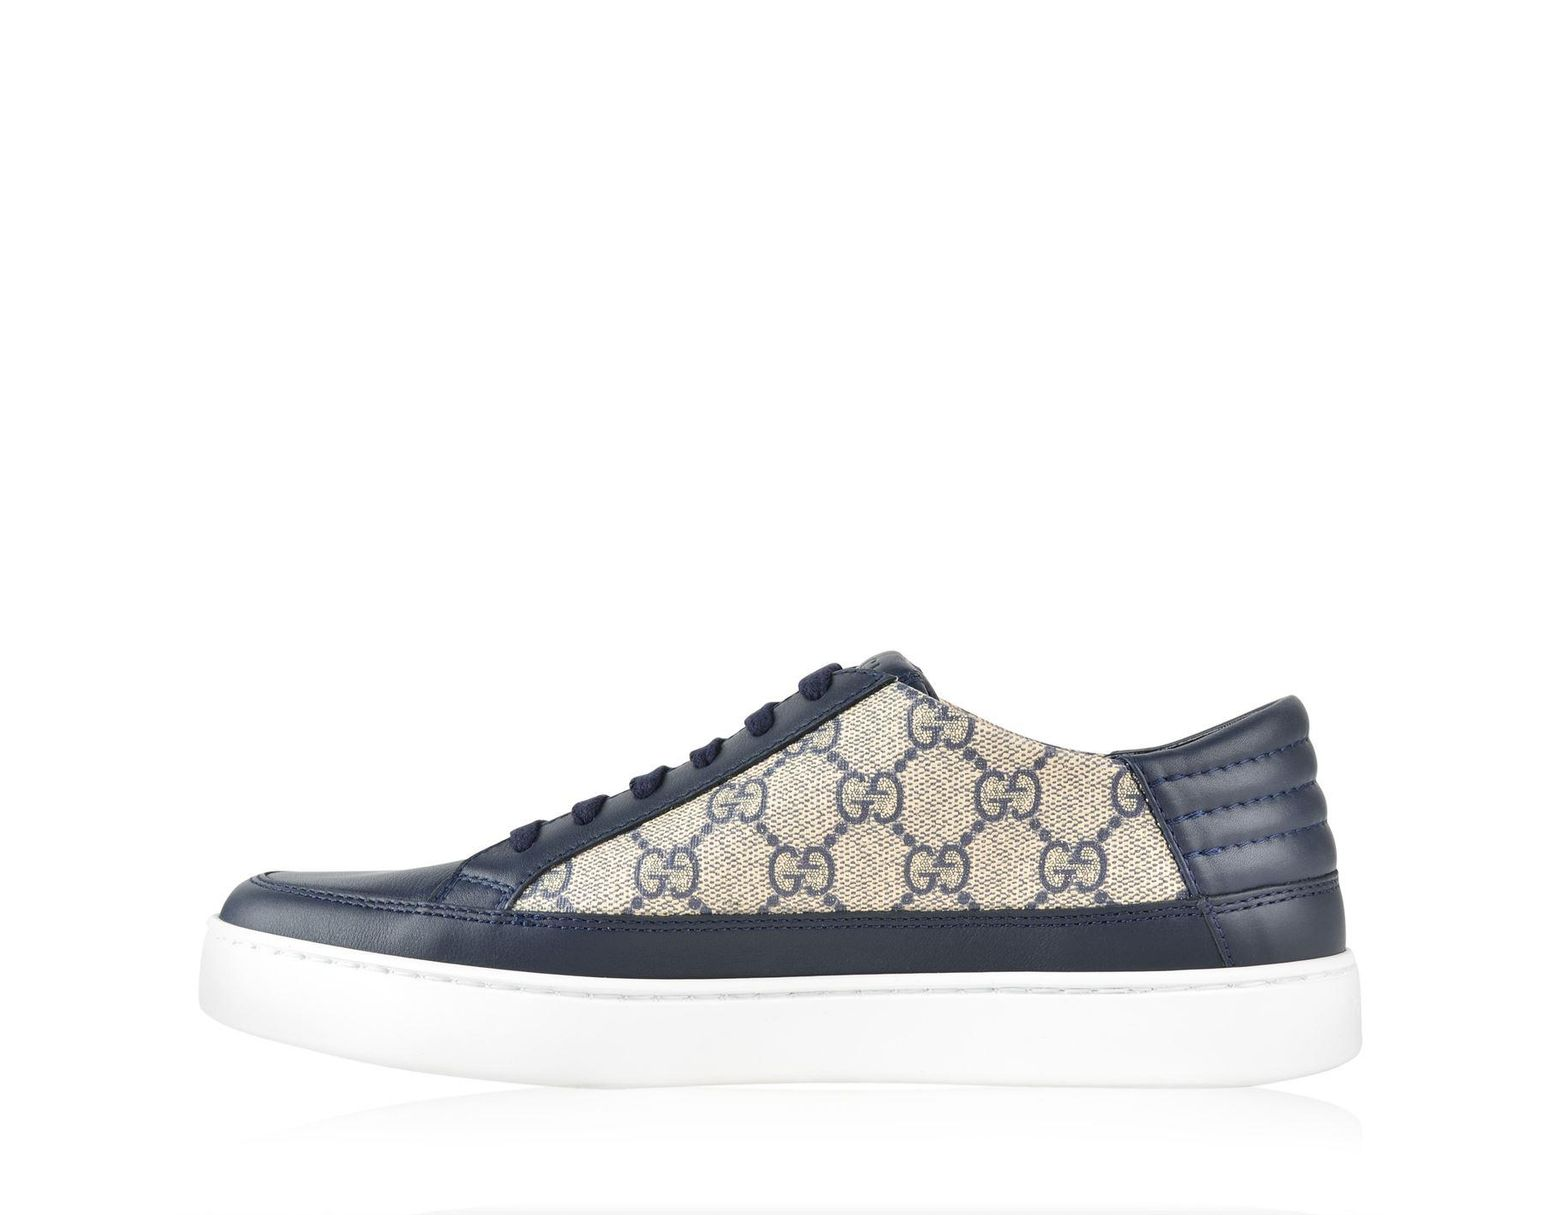 b856544c53a Lyst - Gucci GG Supreme Sneaker in Blue for Men - Save 15%